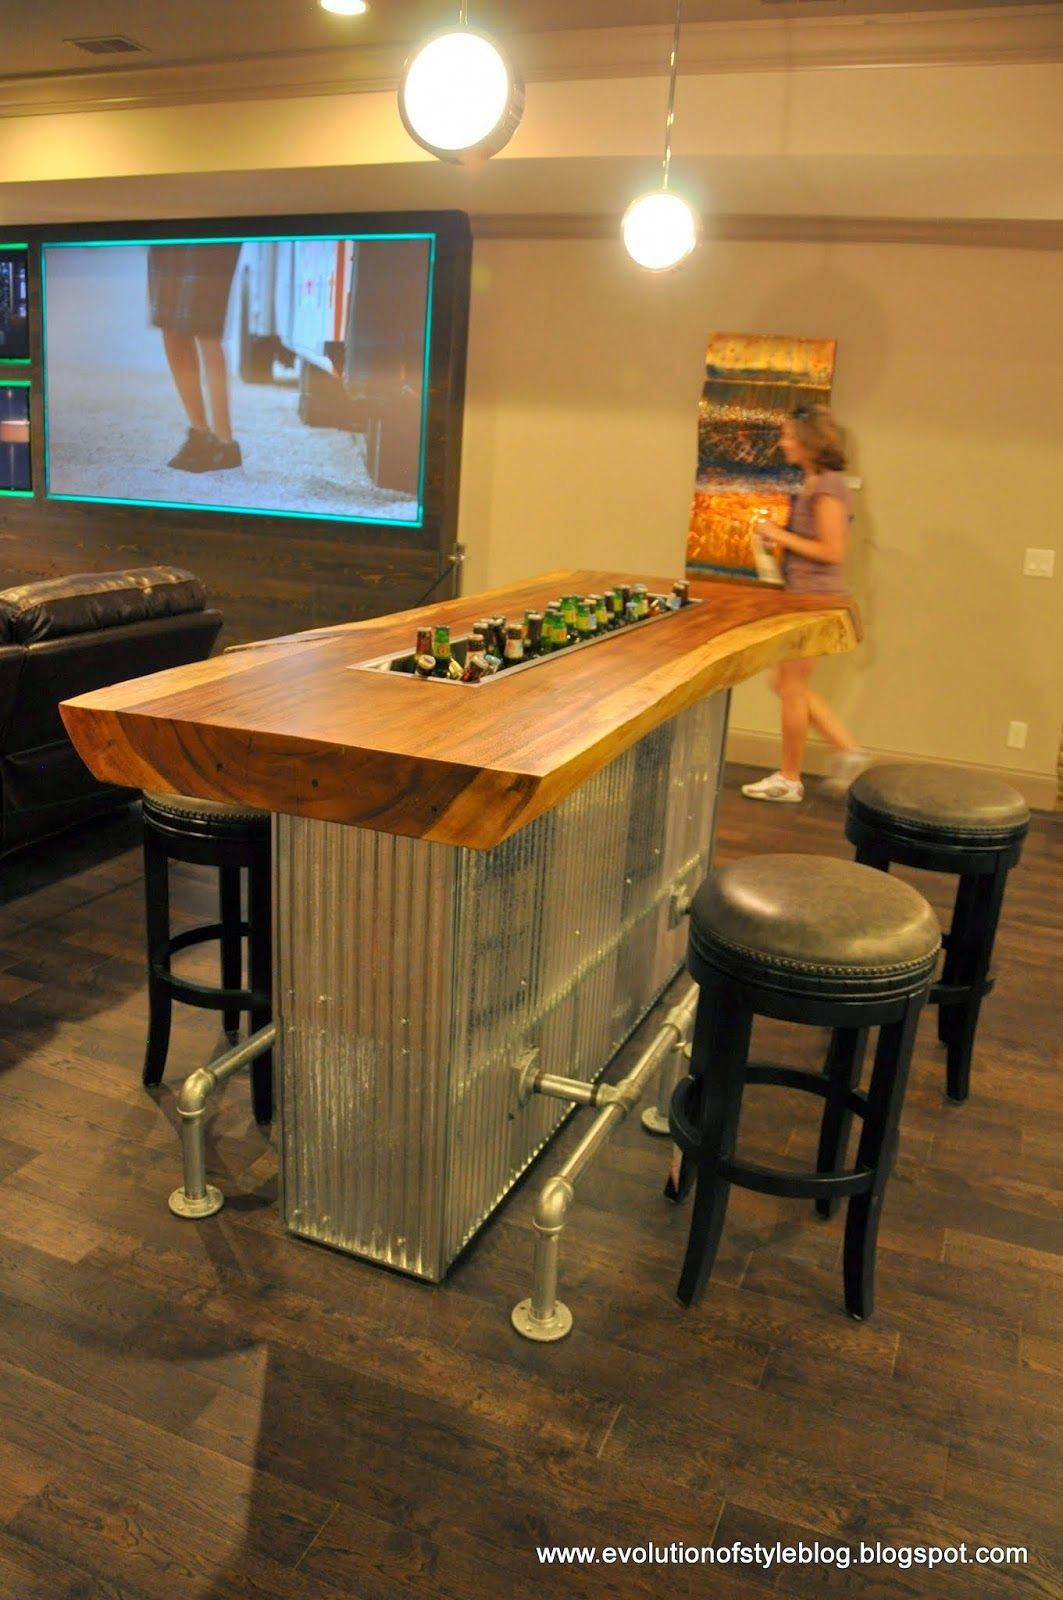 26 Super Cool Outdoor Bars For Your Home Outdoor Bar Ideas Diy Outdoor Bar Ideas Outdoor Bar Ideas Backyards Game Room Basement Bars For Home Basement Games